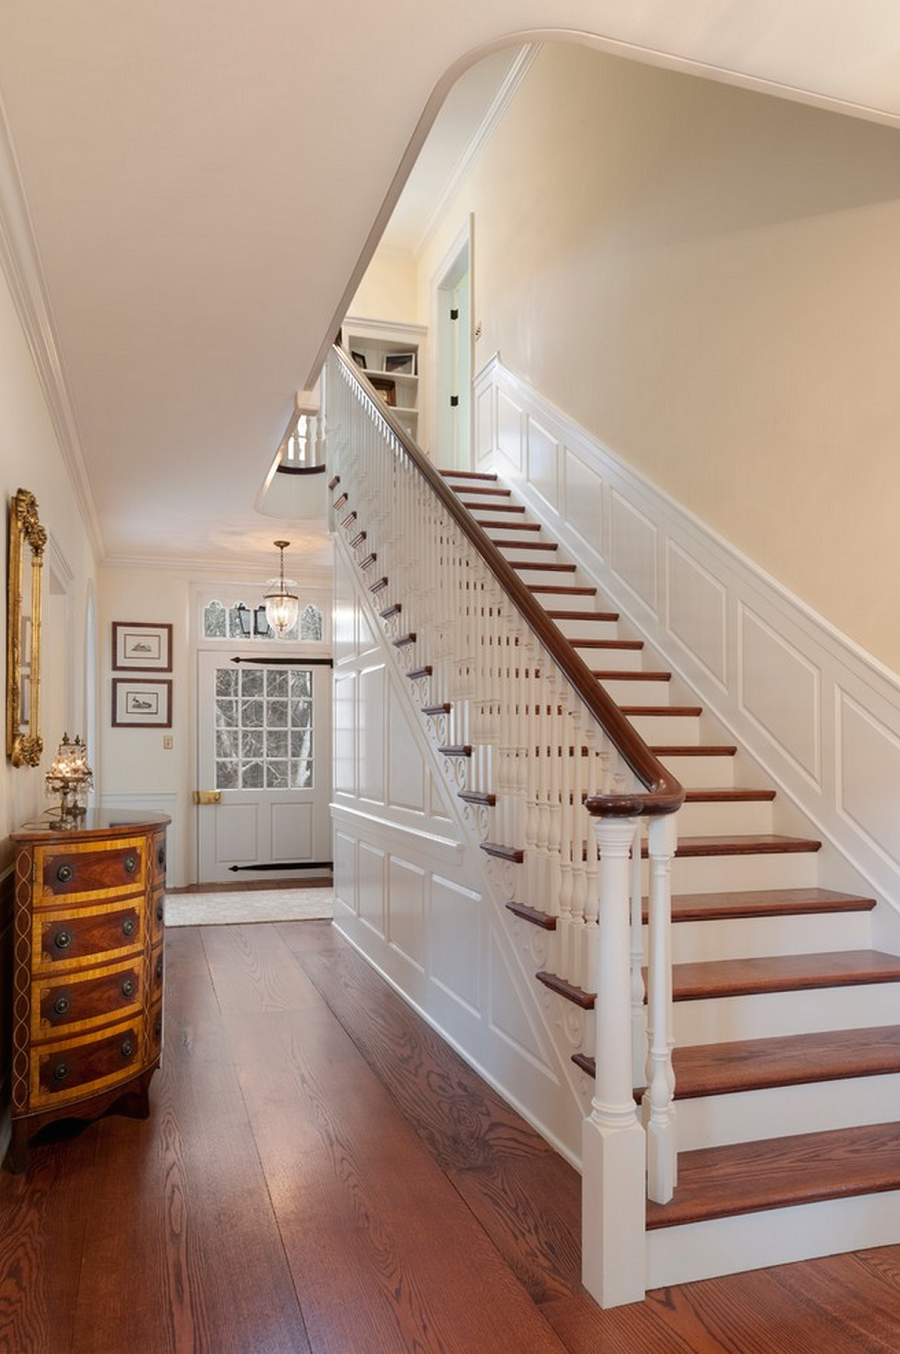 Hardwood Stair Treads Is Classic And Also Stylish On Home Interior Design  With Hardwood Stair Treads